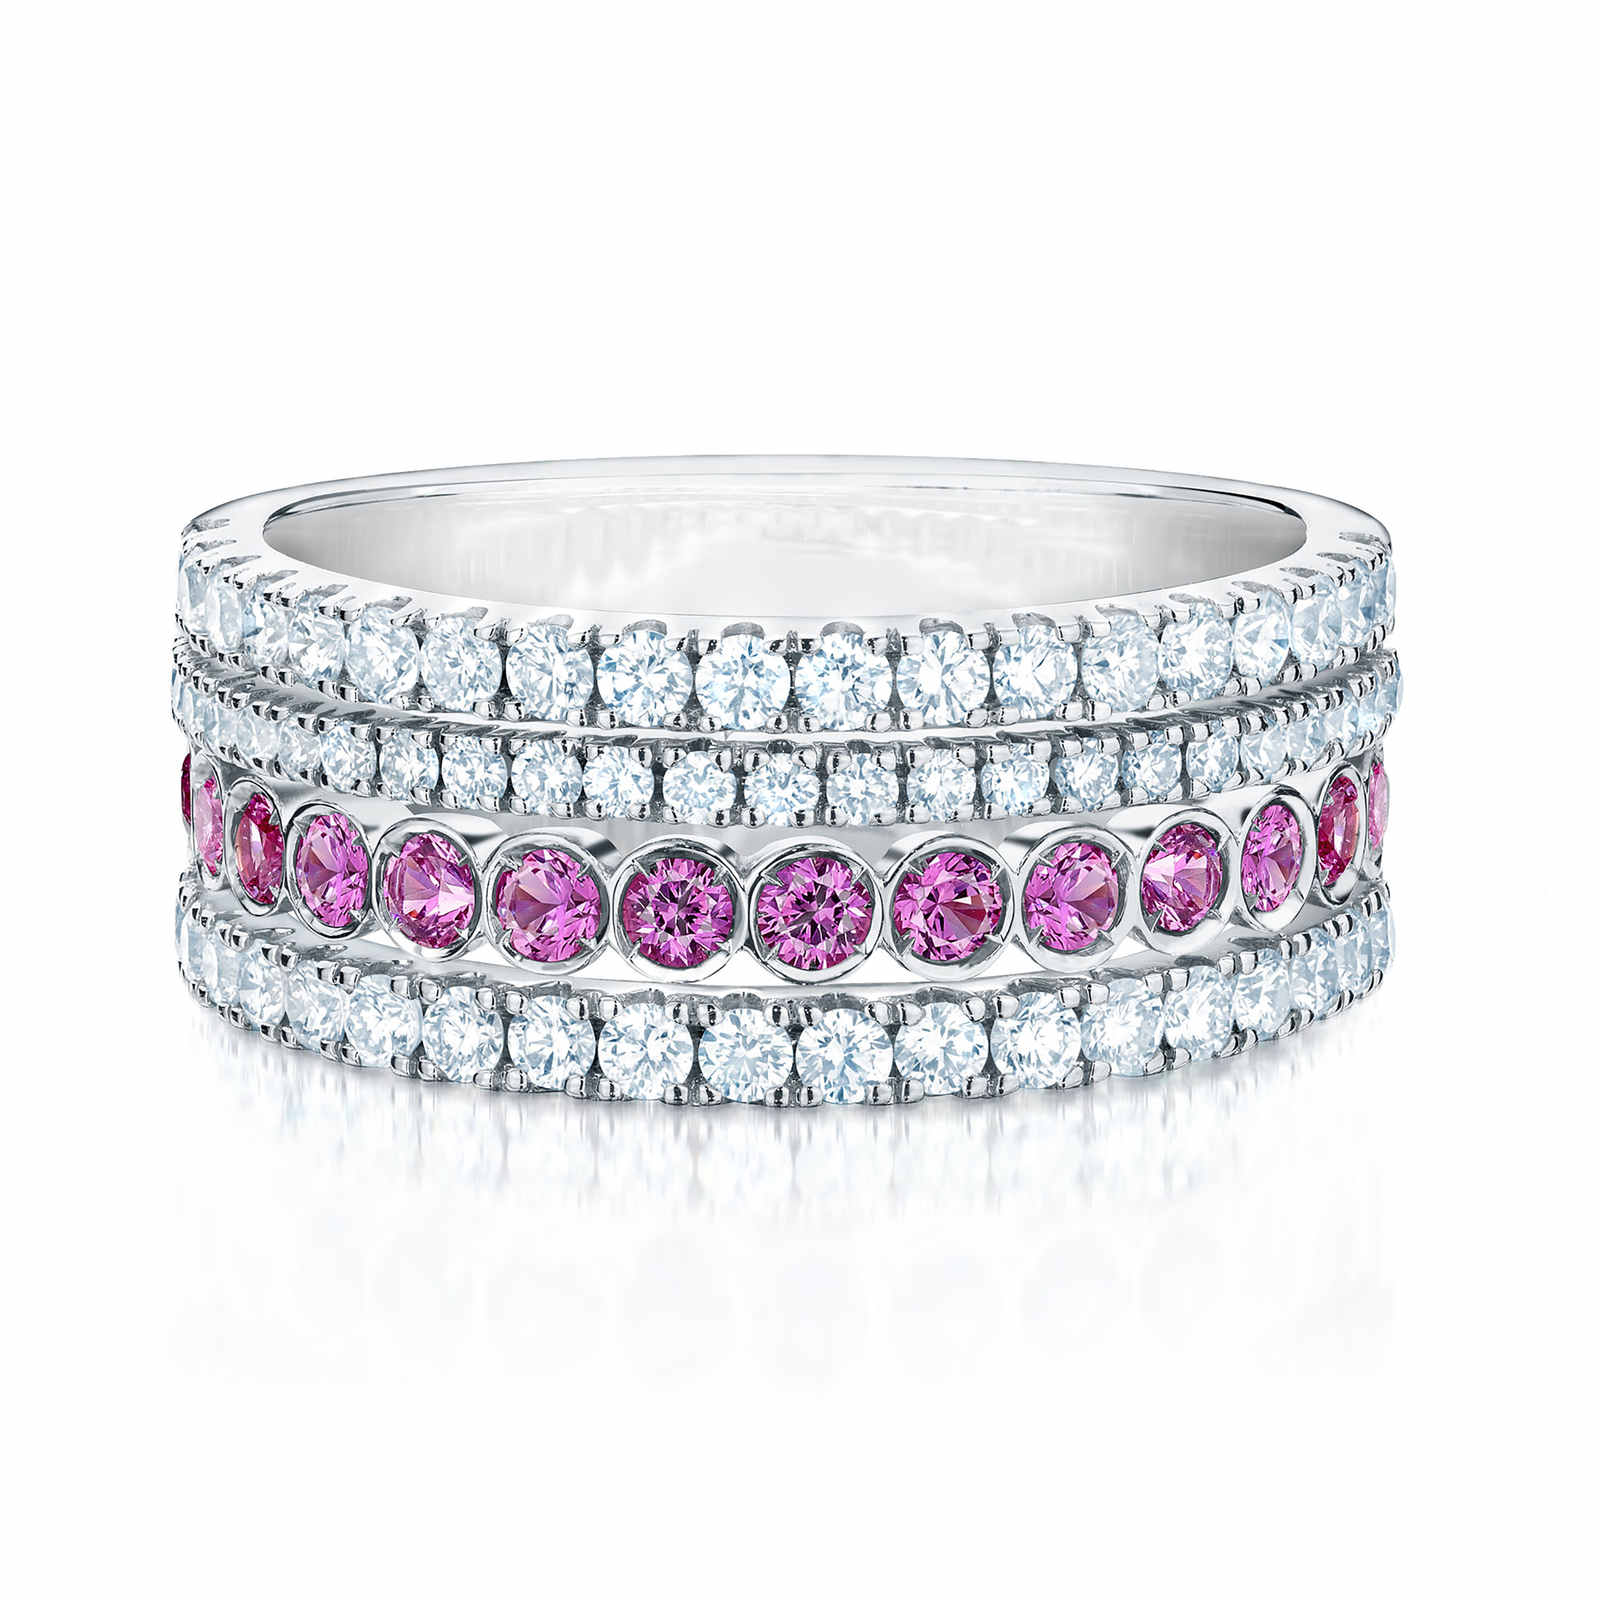 Birks Splash Diamond and Pink Sapphire Ring - Ring Size K